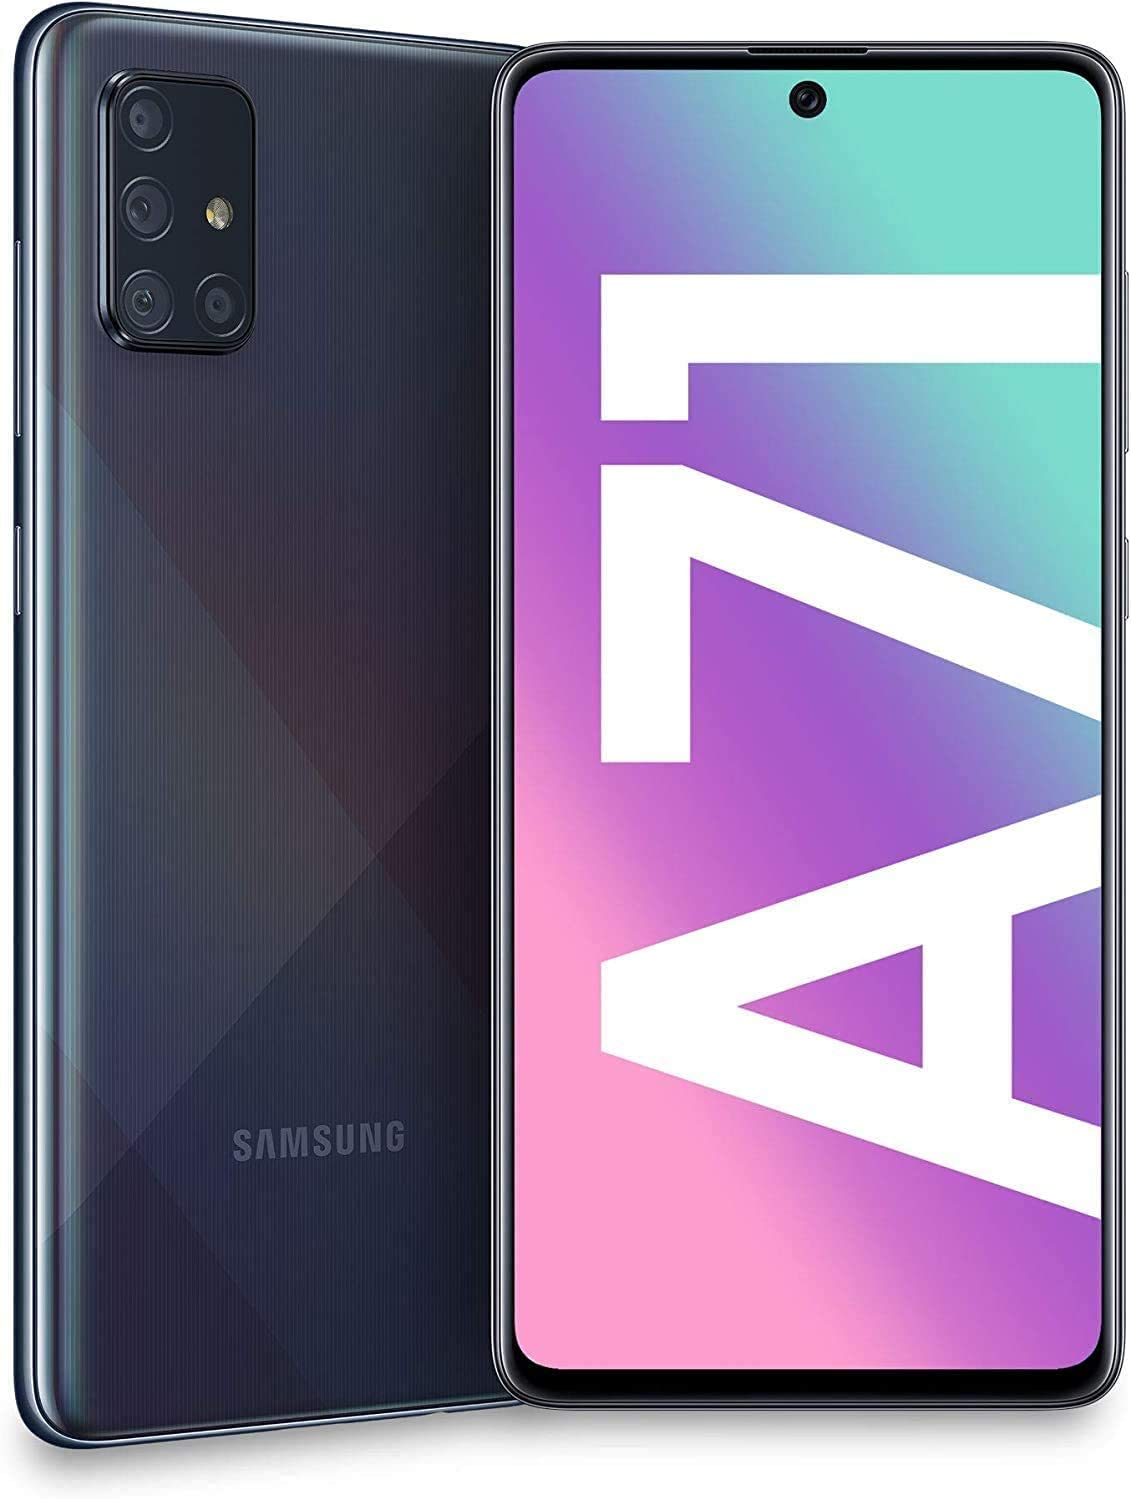 "Samsung Galaxy A71 (128GB, 6GB) 6.7"", 64MP Quad Camera, 25W Fast Charger, Android 10, GSM Unlocked US + Global 4G LTE International Model A715F/DS (128GB + 64GB SD + Case Bundle, Prism Crush Black)"